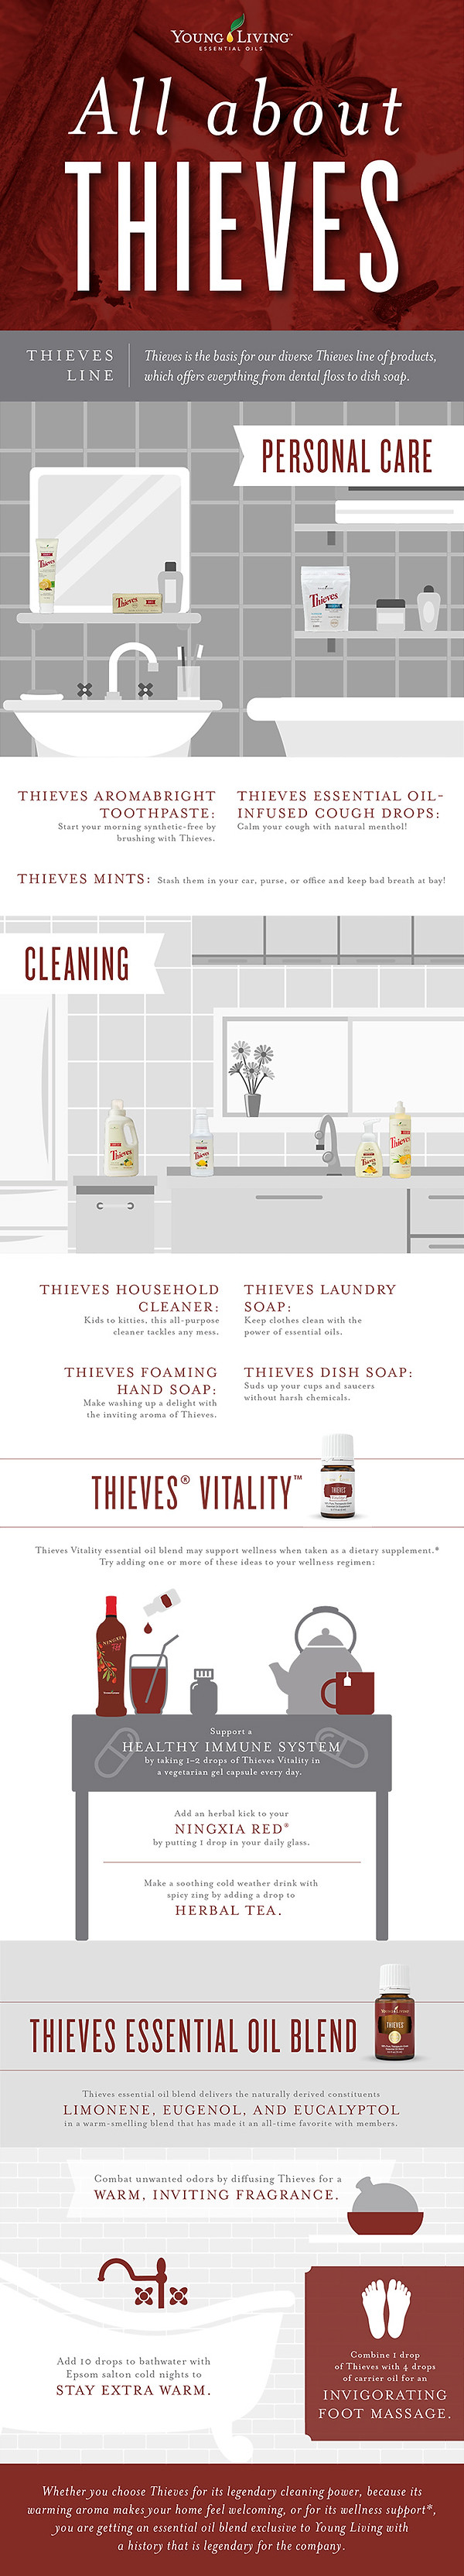 blog-All-about-Thieves_Infographic_US-1.